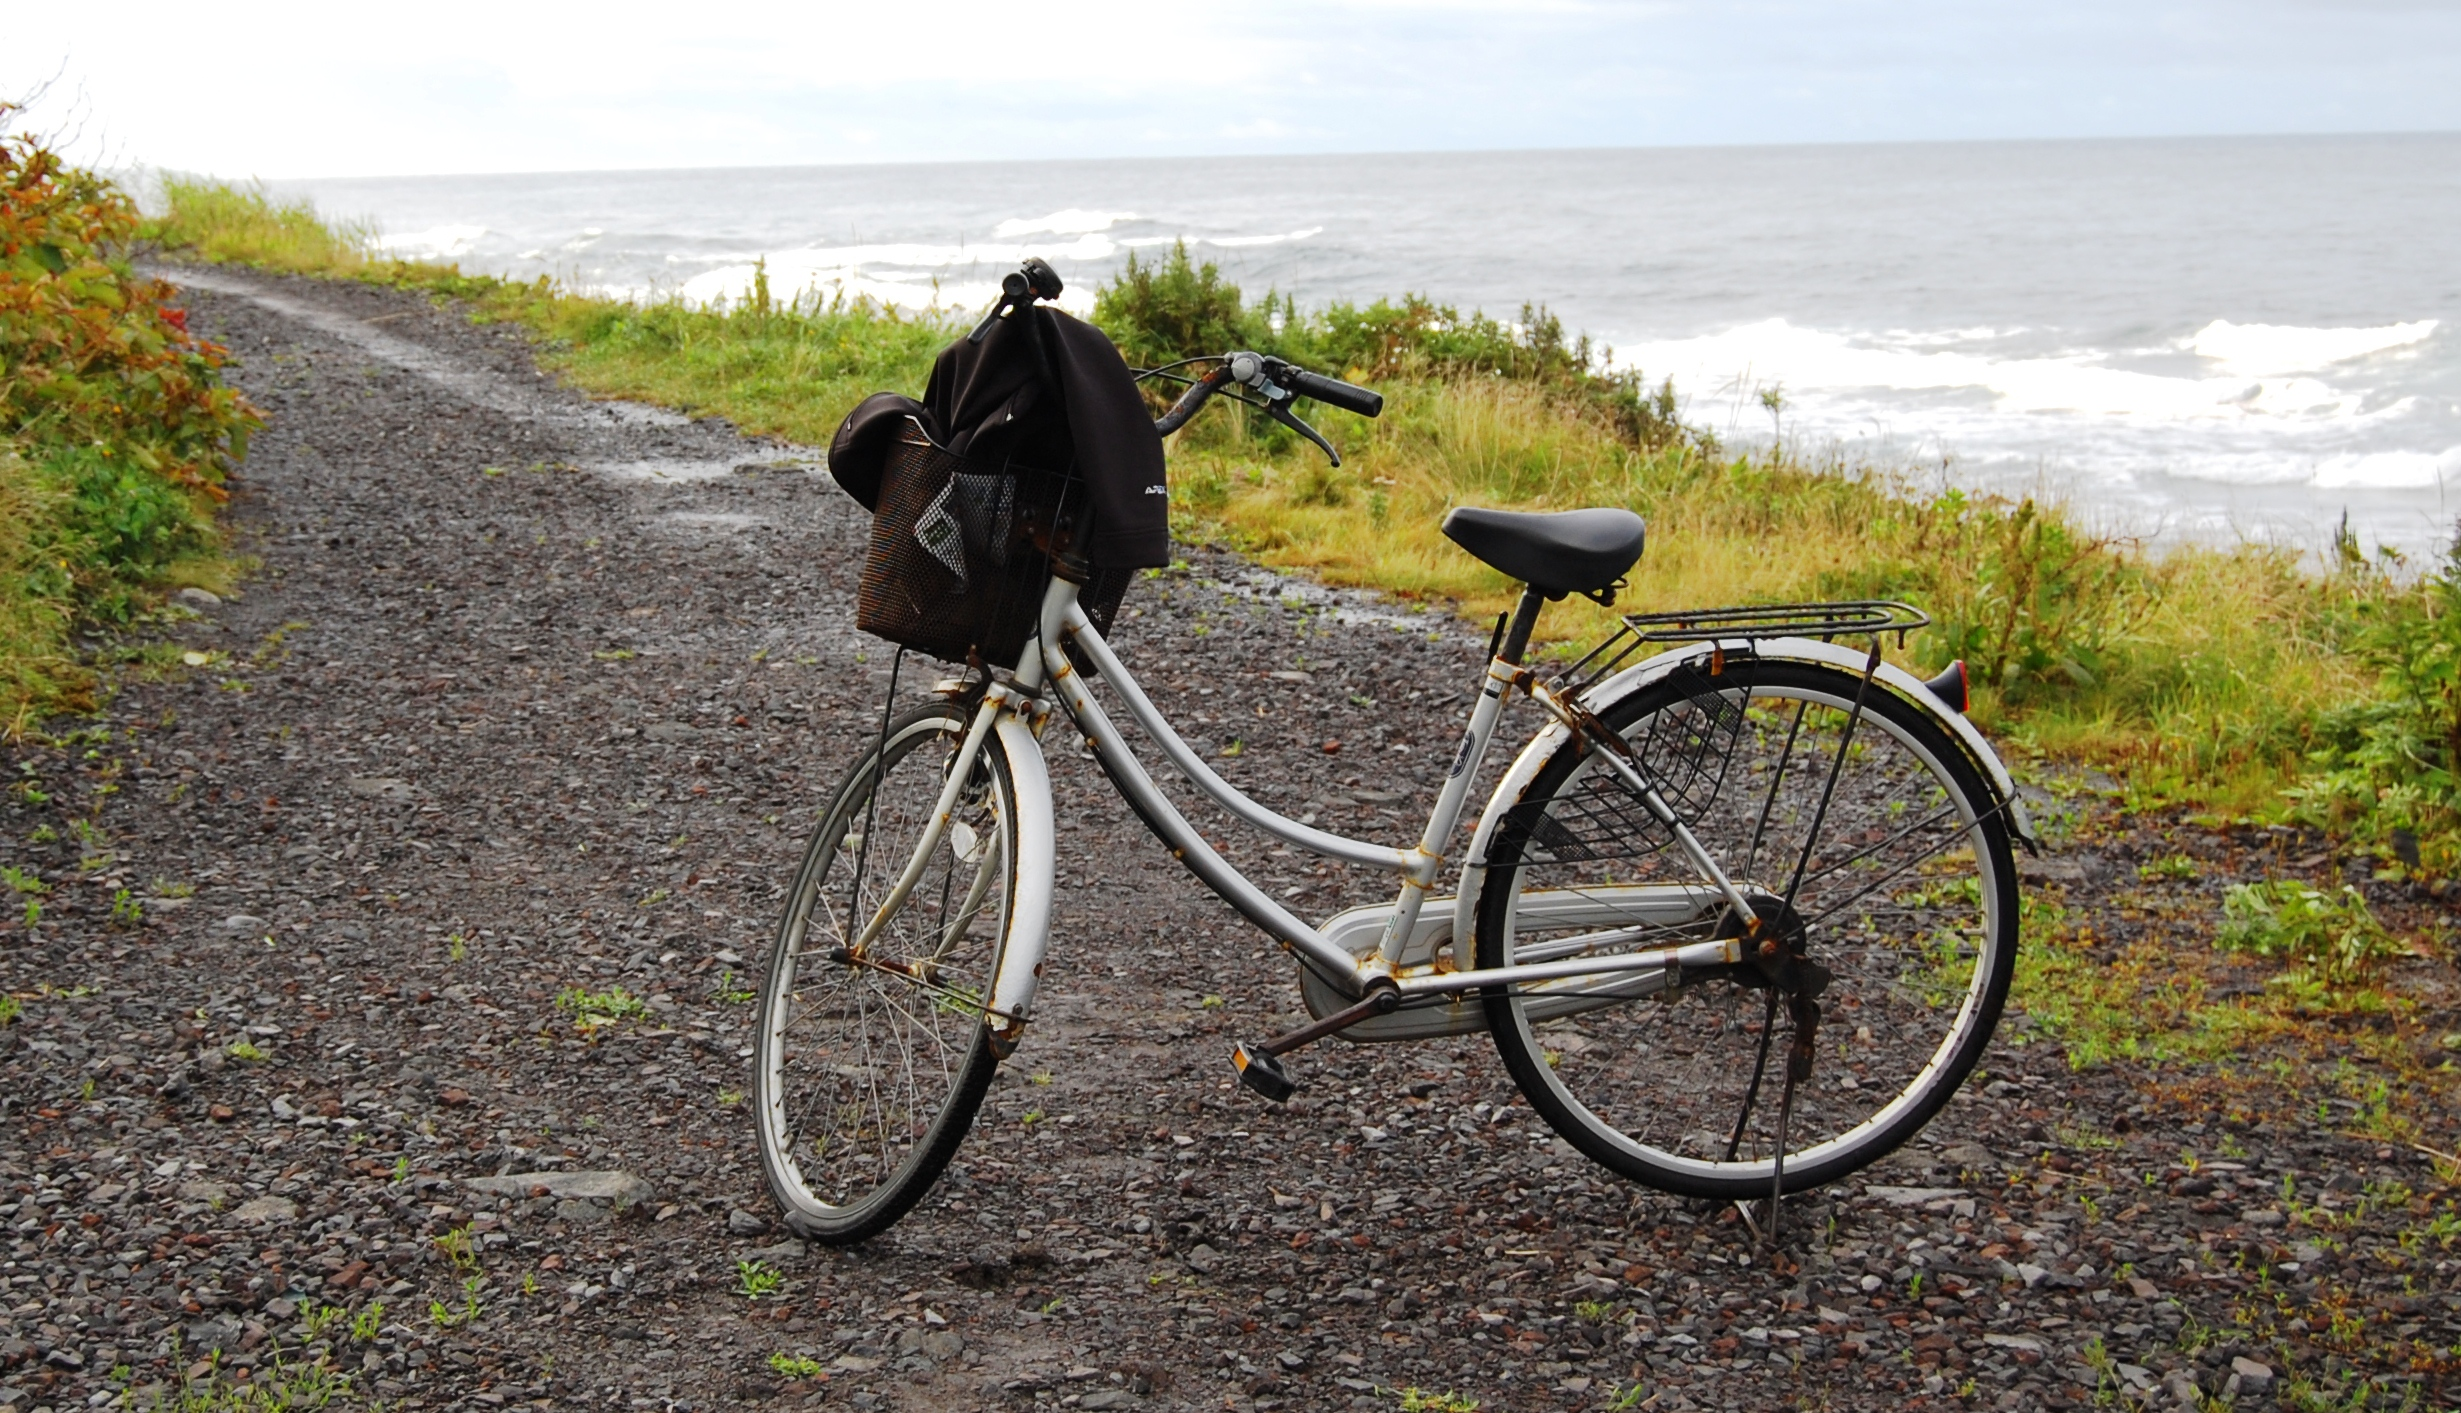 An old bicycle with a handlebar basket, on a gravel road next to the Pacific Ocean, Japan.